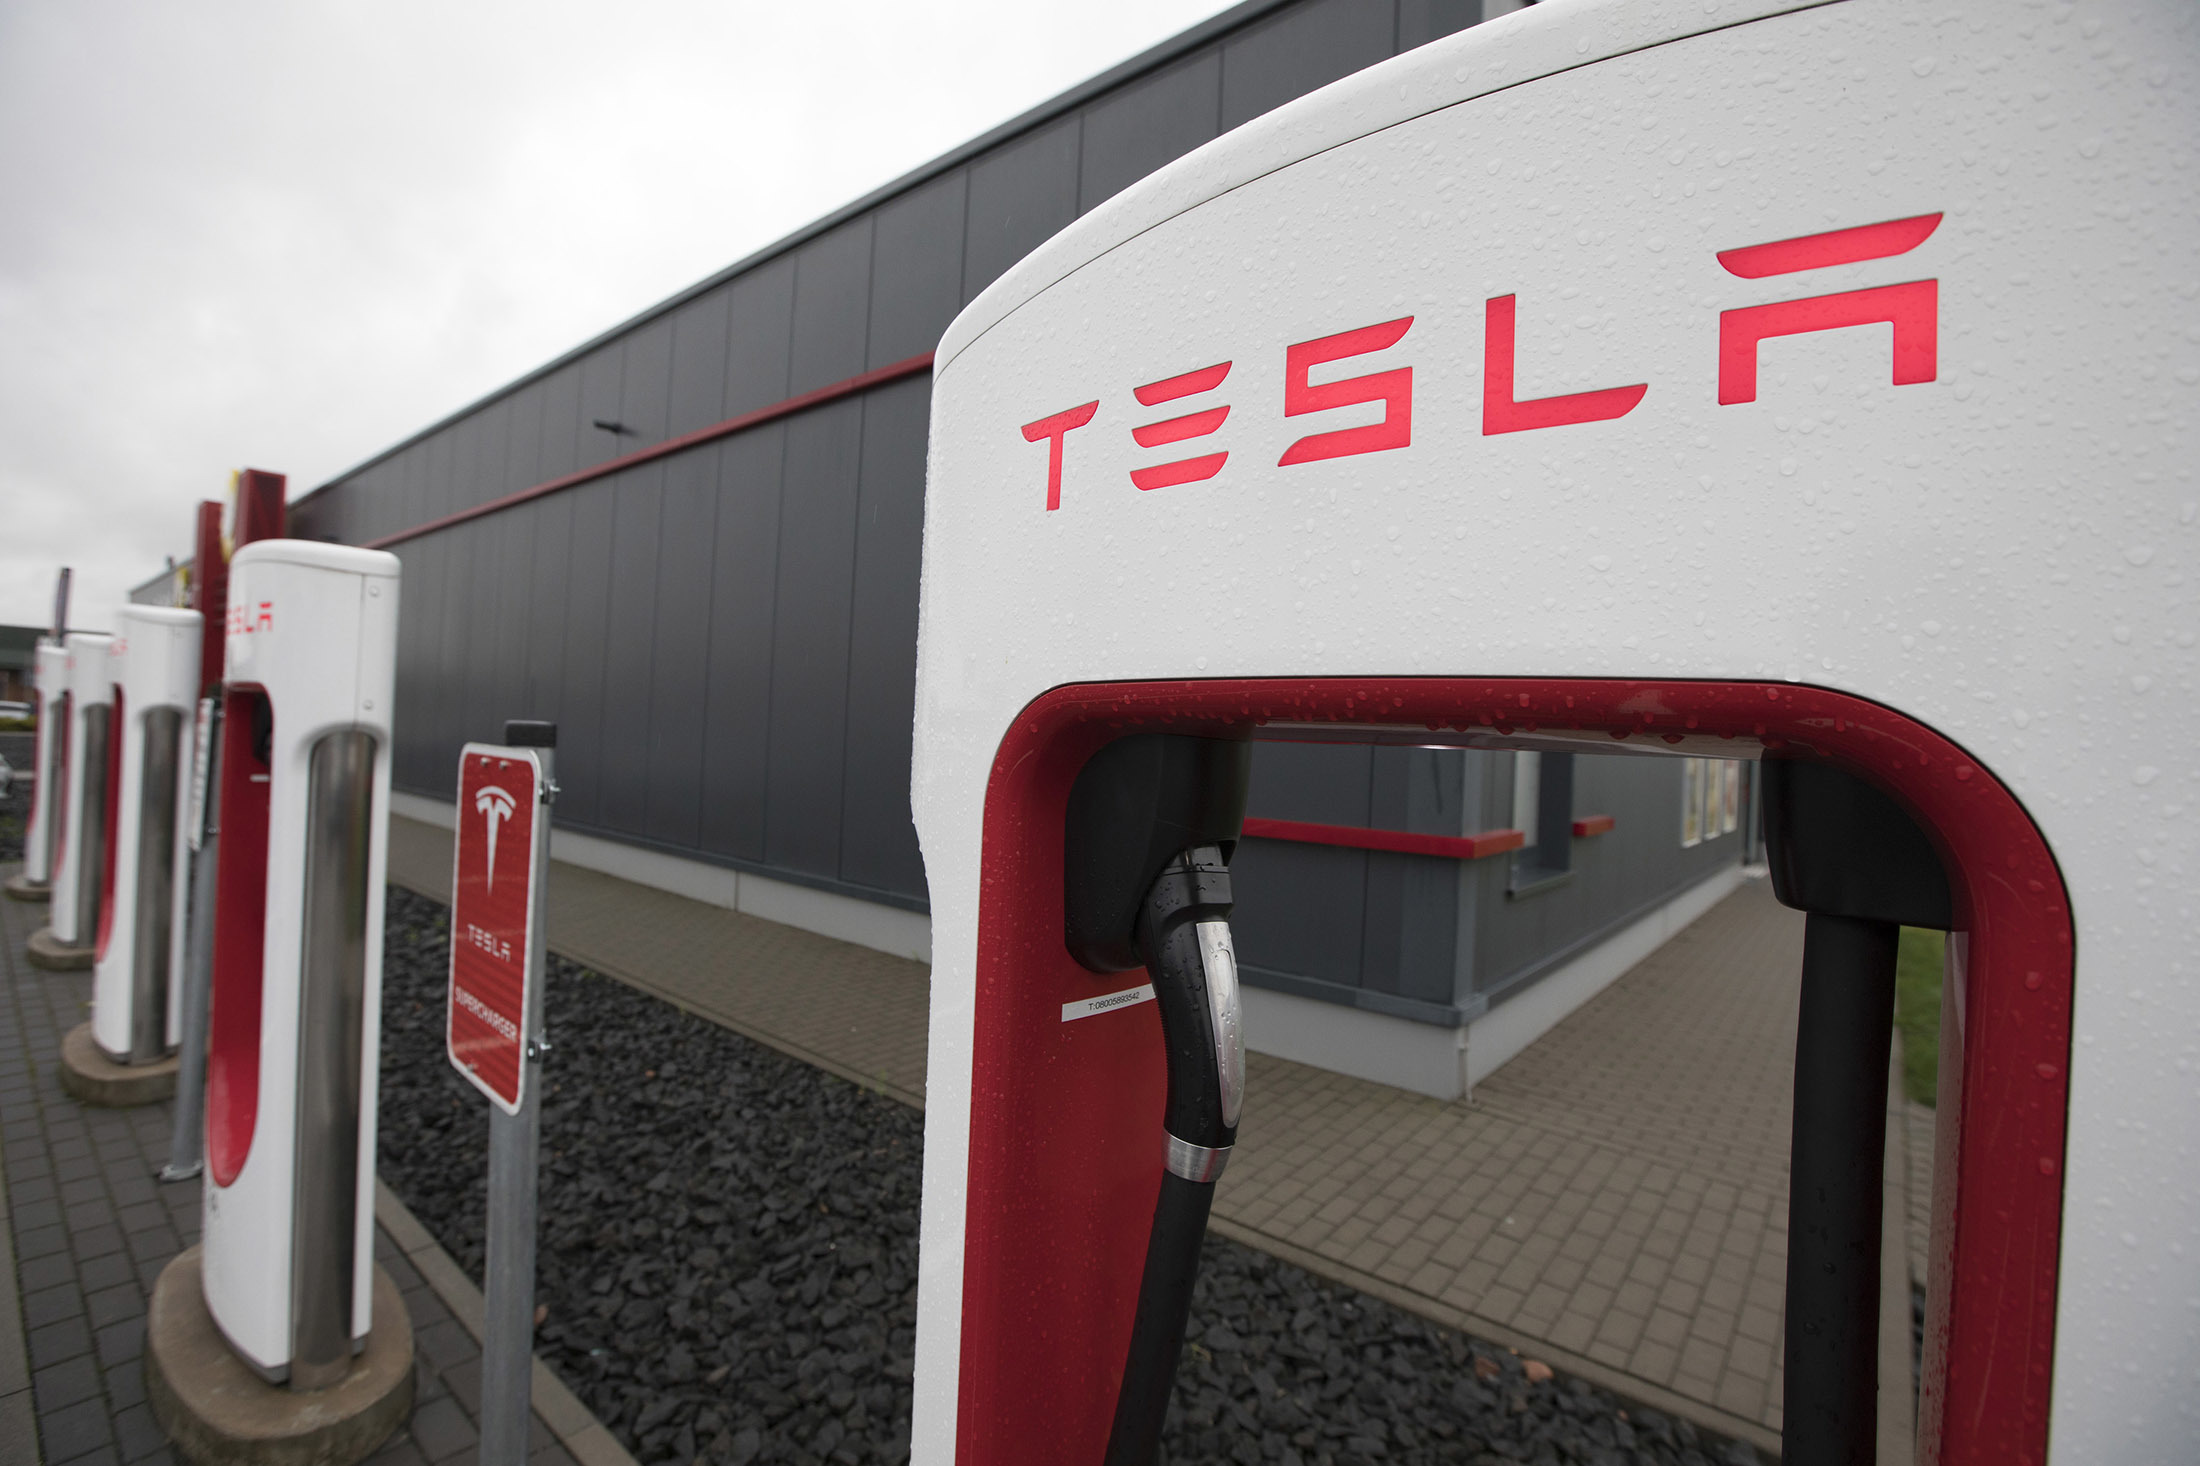 A Tesla Inc. Model X electric automobile charging station stands in Frankfurt, Germany, on Friday, Aug. 11, 2017. Germany's government wants carmakers to increase efforts to reach its goal of 1 million electric vehicles on German roads by 2020, Steffen Seibert, Chancellor Angela Merkels spokesman, told reporters today in Berlin. Photographer: Alex Kraus/Bloomberg